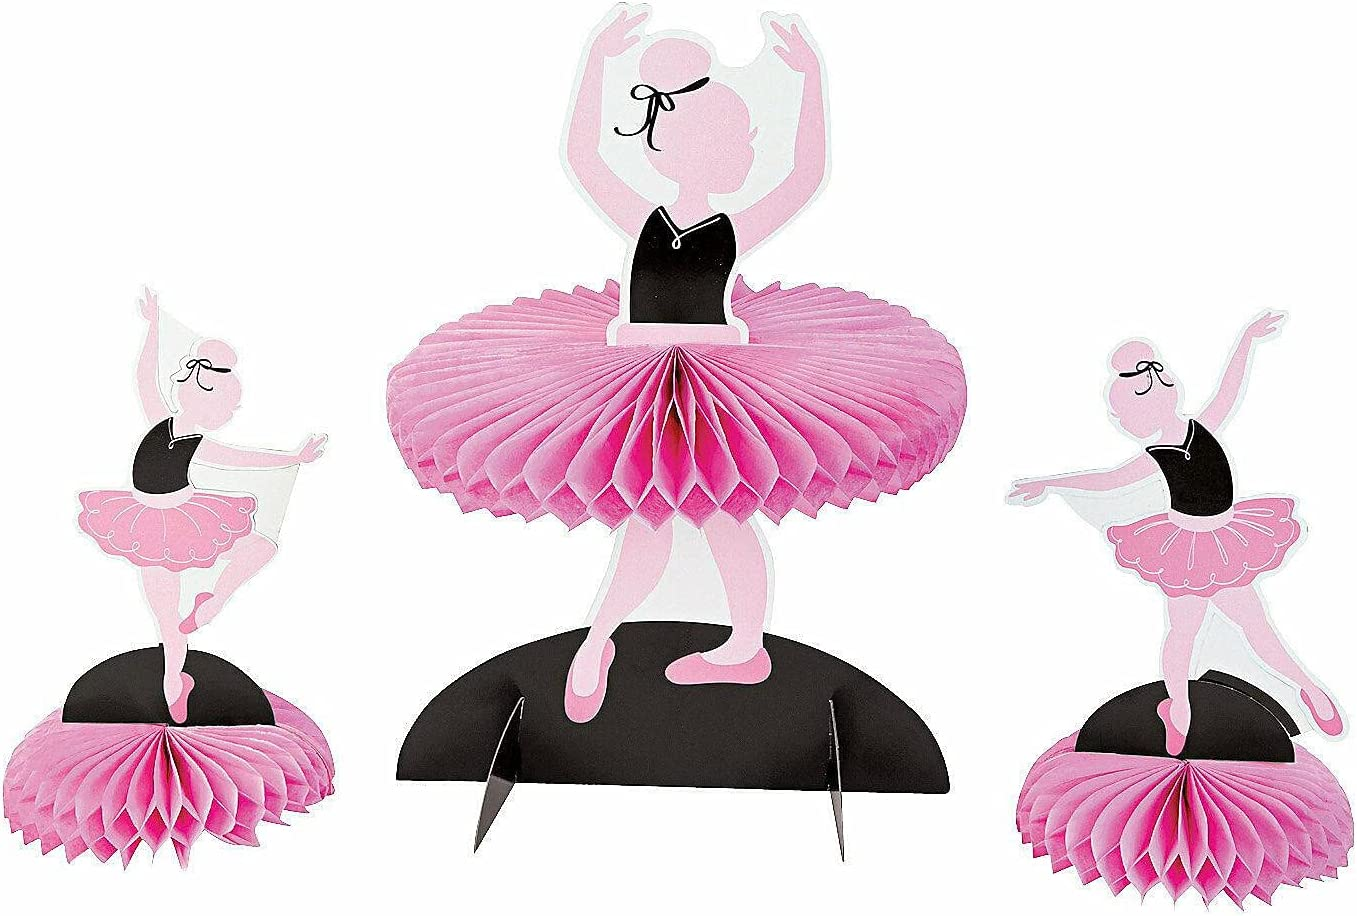 Max 76% OFF Little Ballerina Centerpieces - Party Deco Pieces Desk 3 Decor Directly managed store